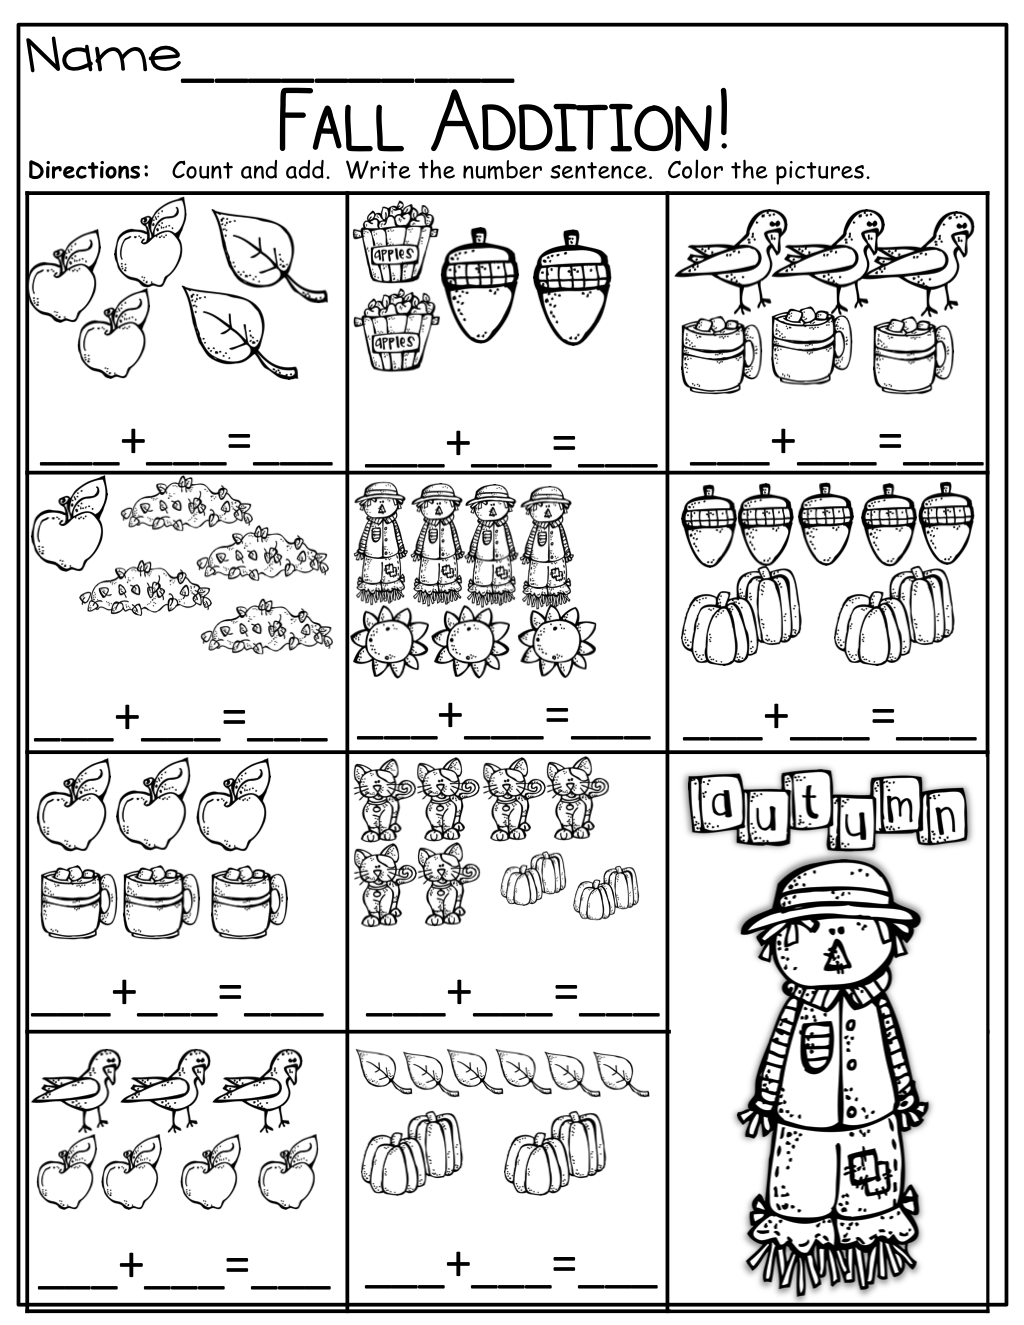 Simple addition worksheets for second grade